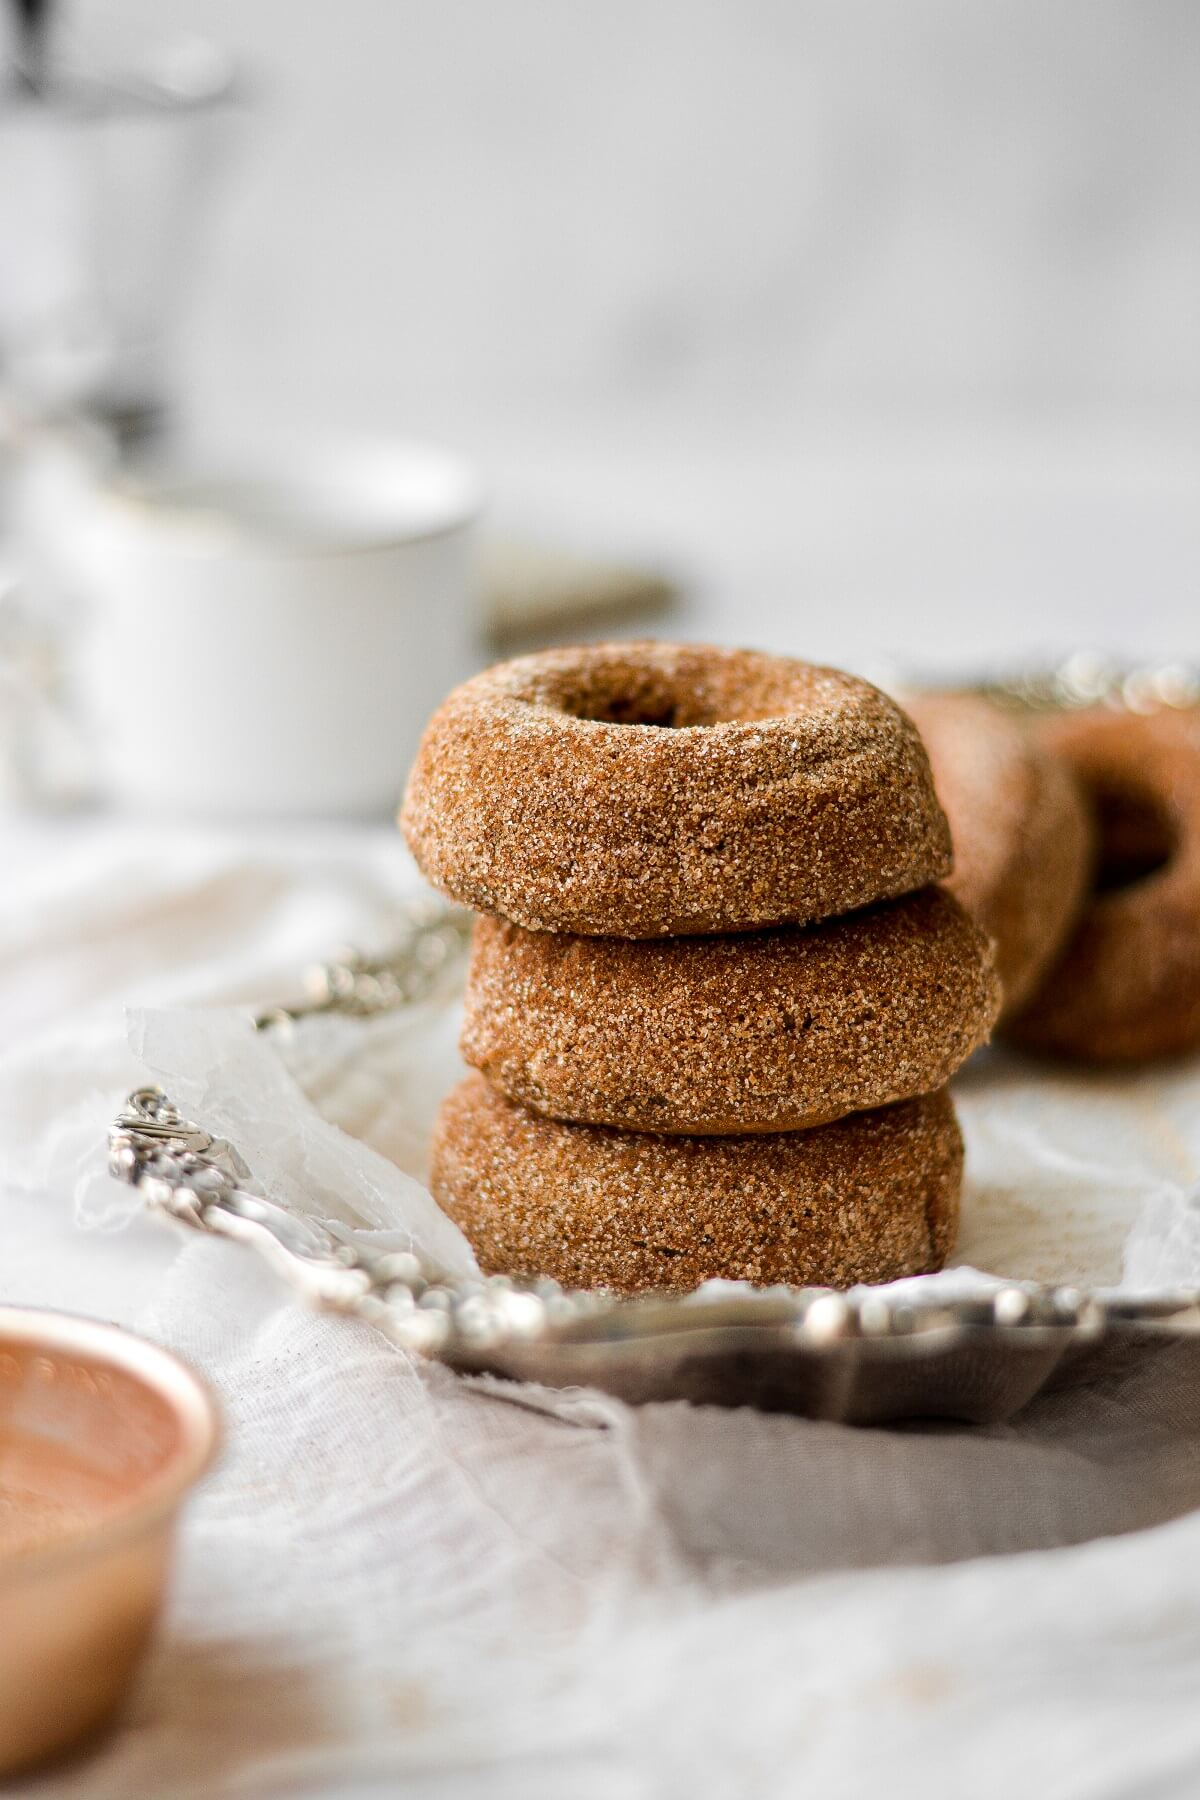 Baked pumpkin spice donuts, coated in cinnamon sugar, stacked on a silver plate.